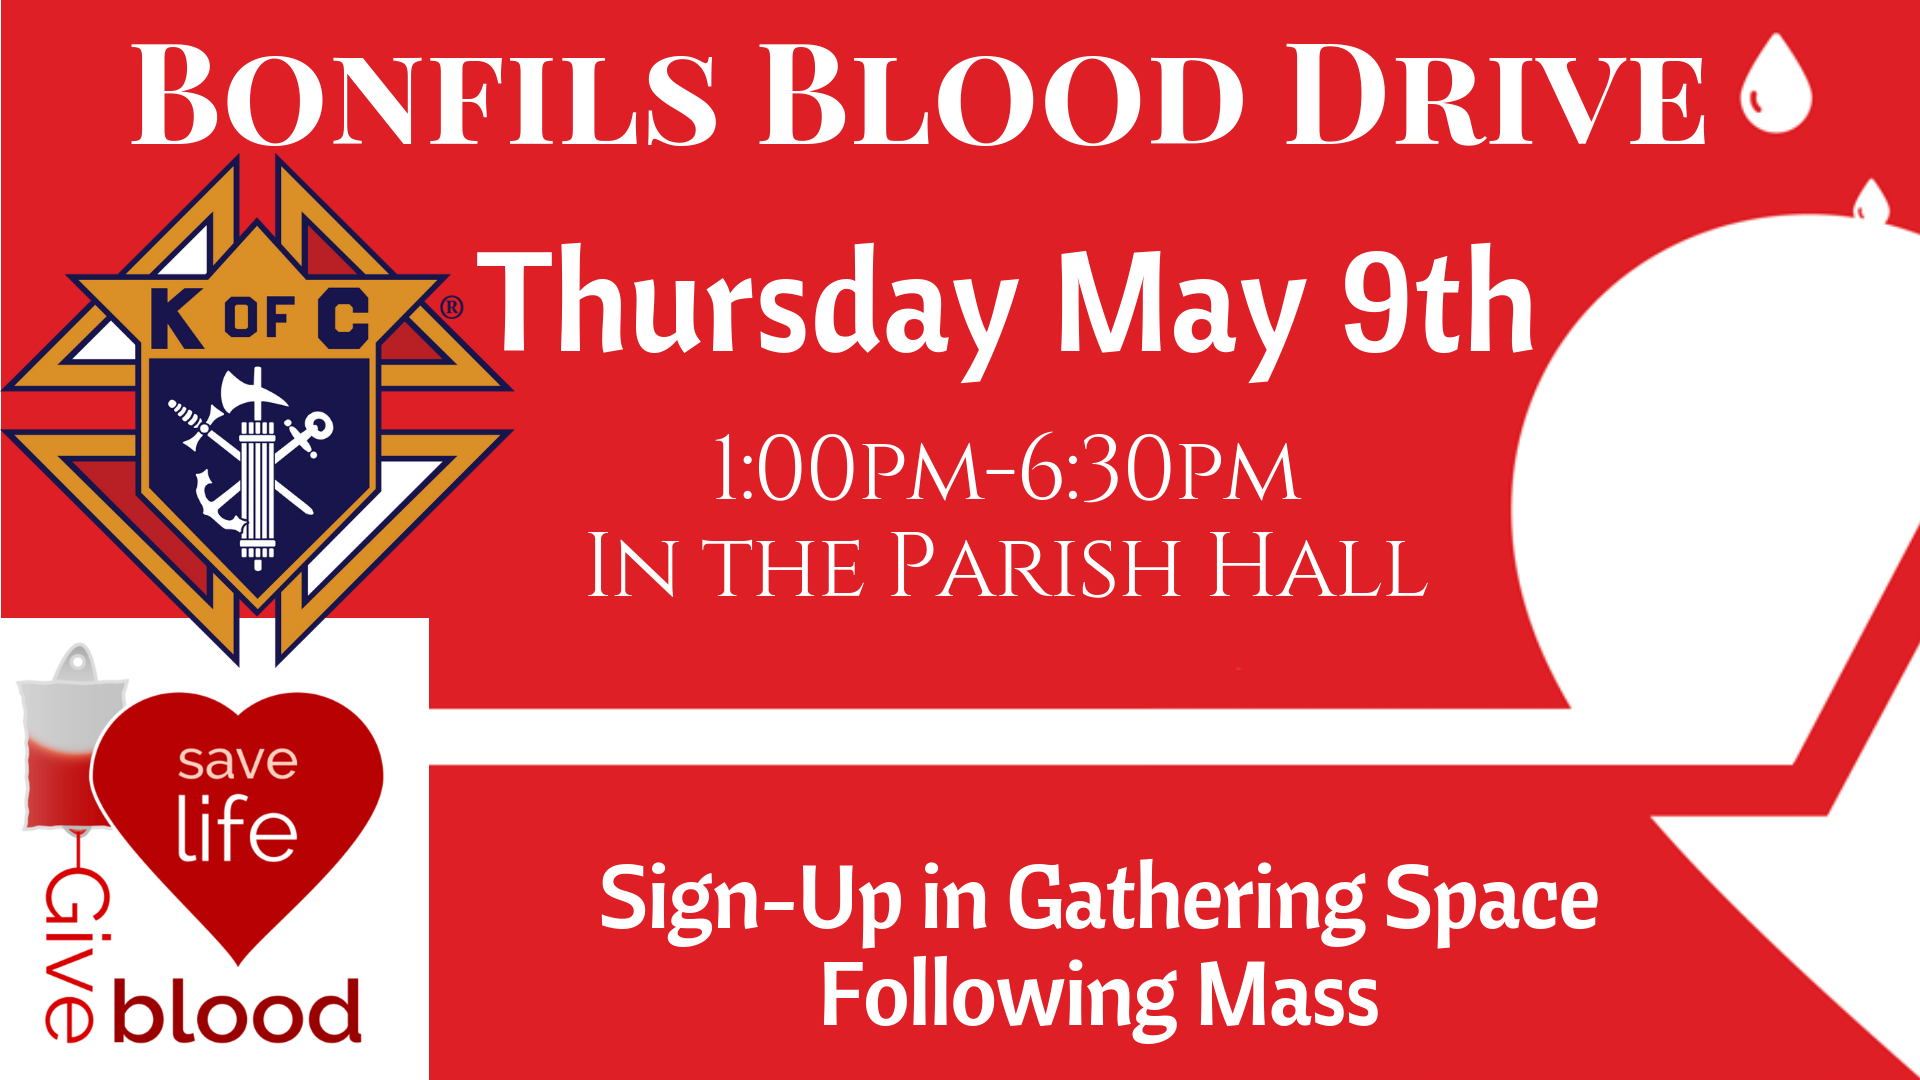 K of C Blood Drive ANNOUNCEMENT.png